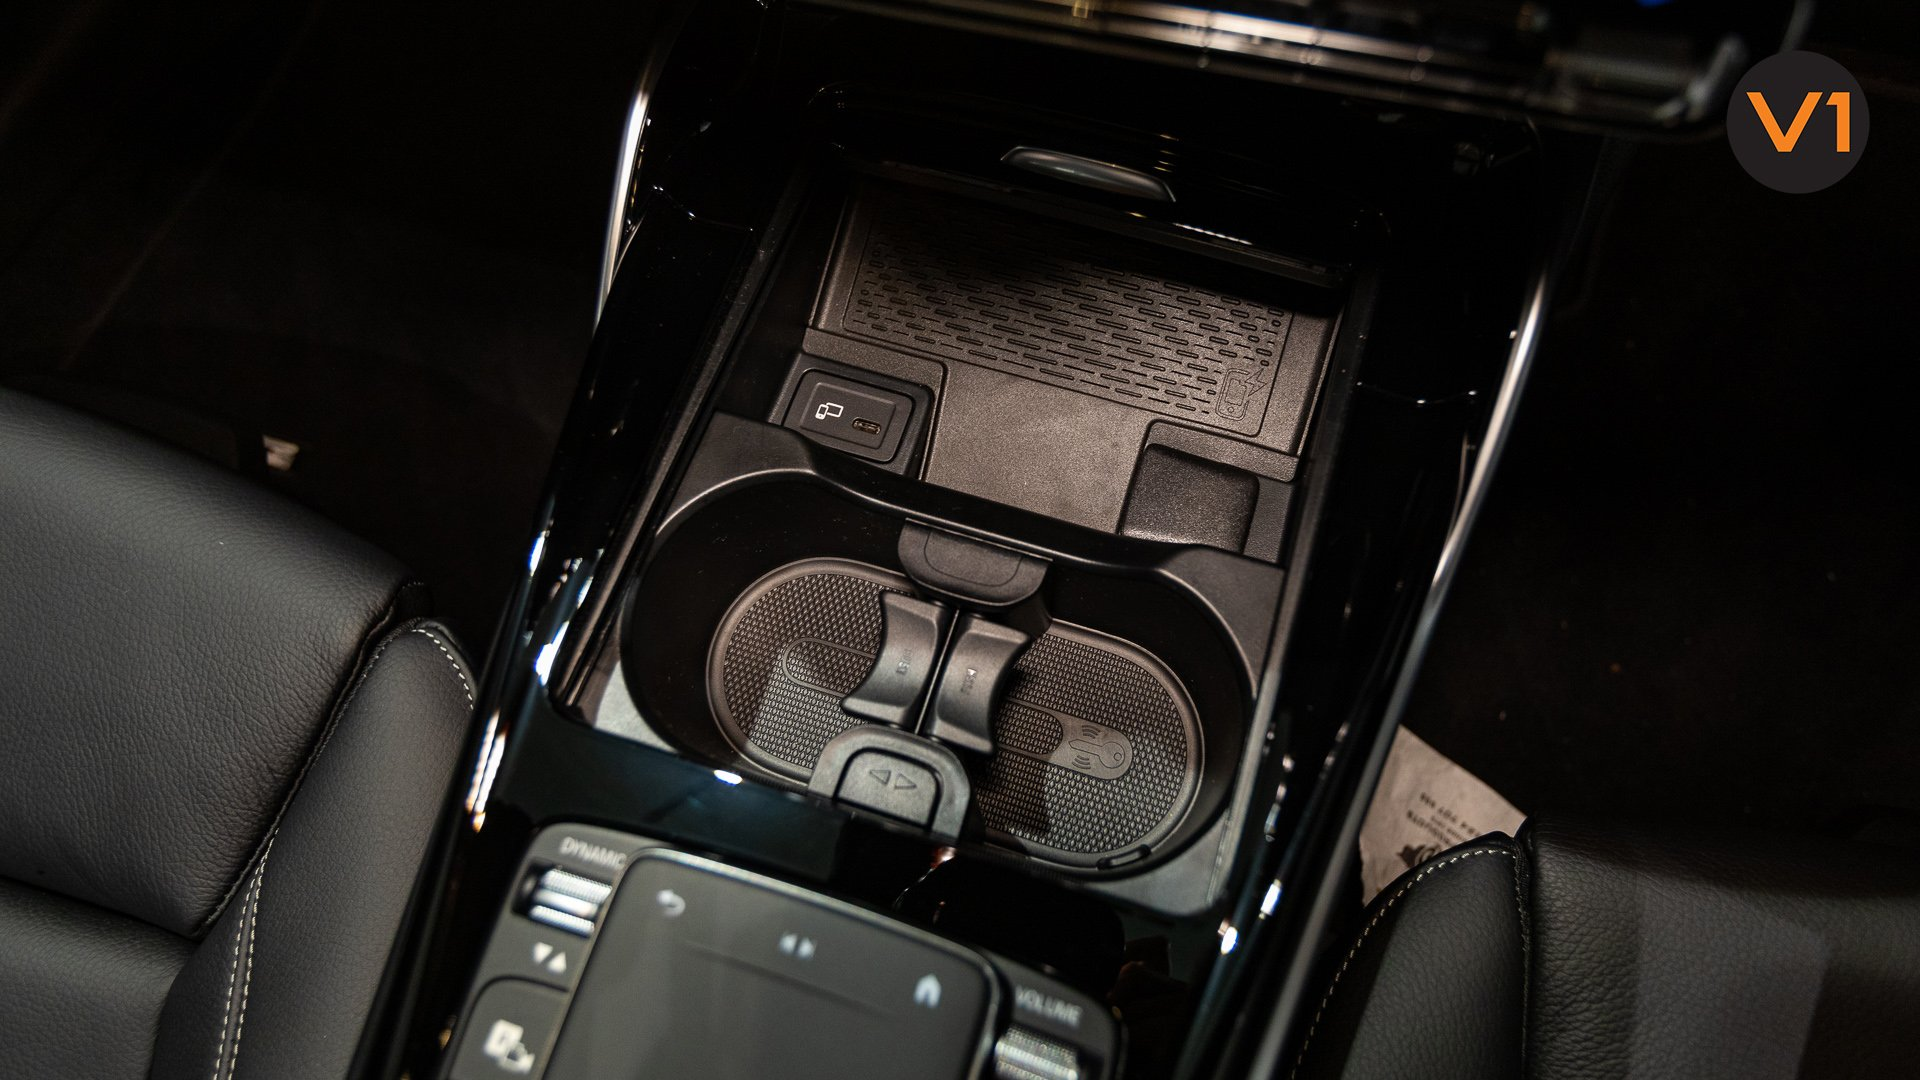 Mercedes-AMG CLA35 Coupe AMG 4Matic Premium Plus - Cup holder